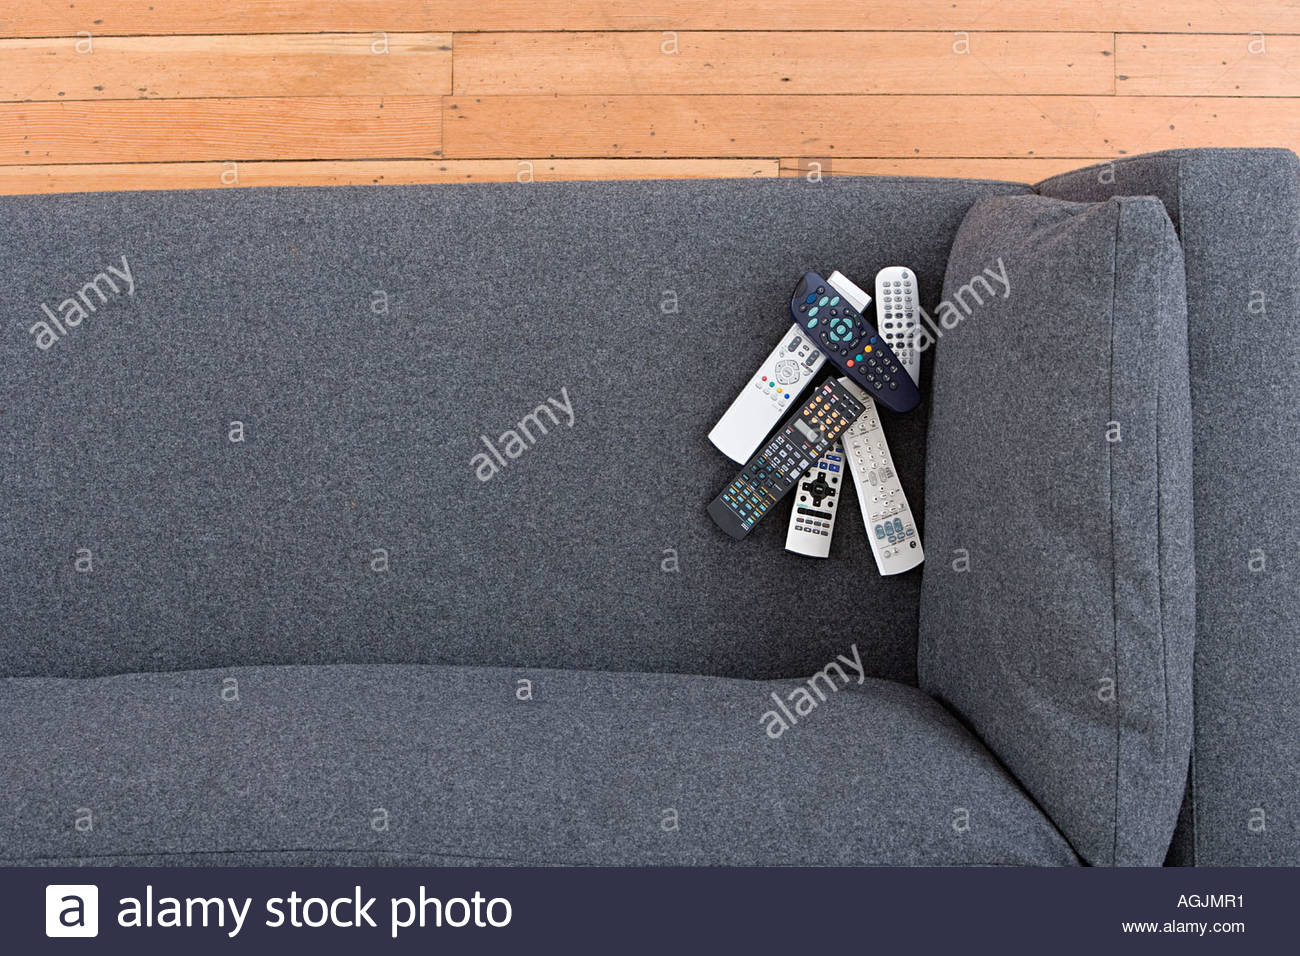 Remote controls on a sofa - Stock Image